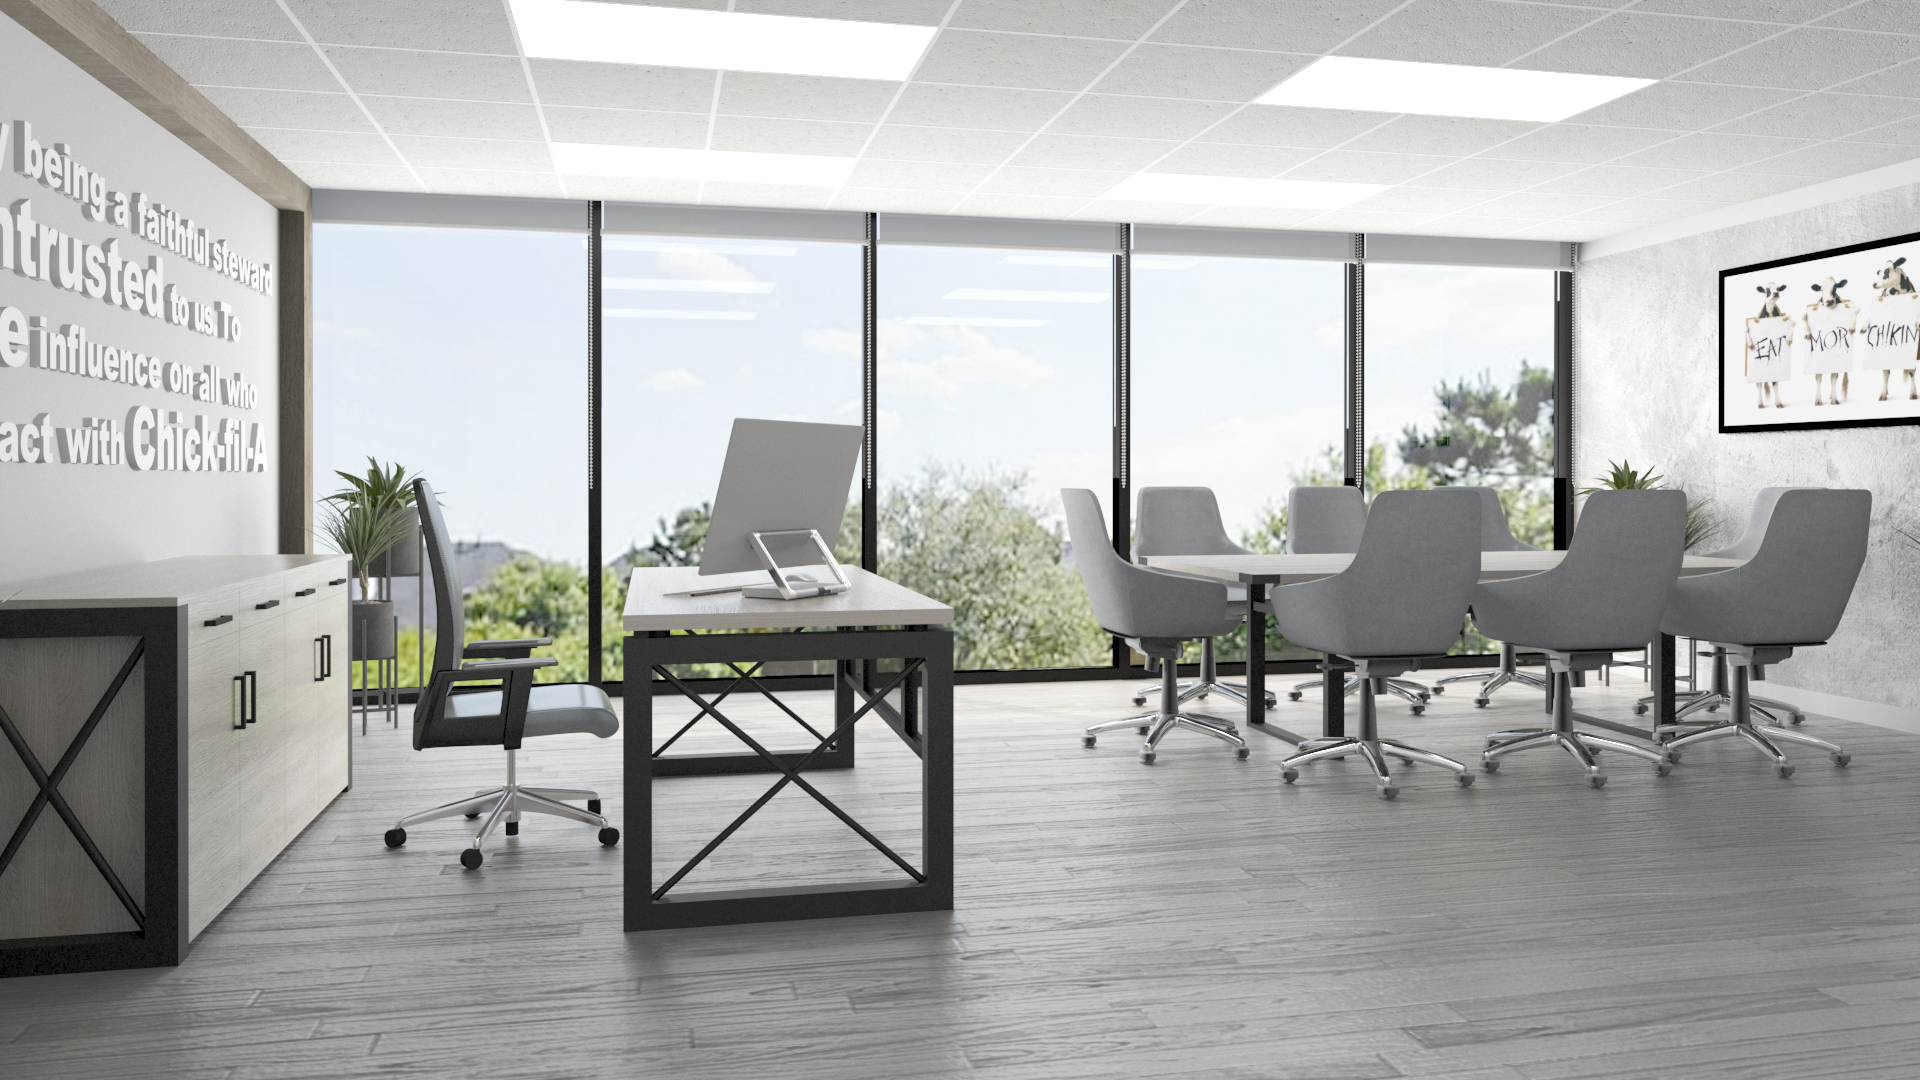 CONFERENCE ROOM - OFFICE AREA 03